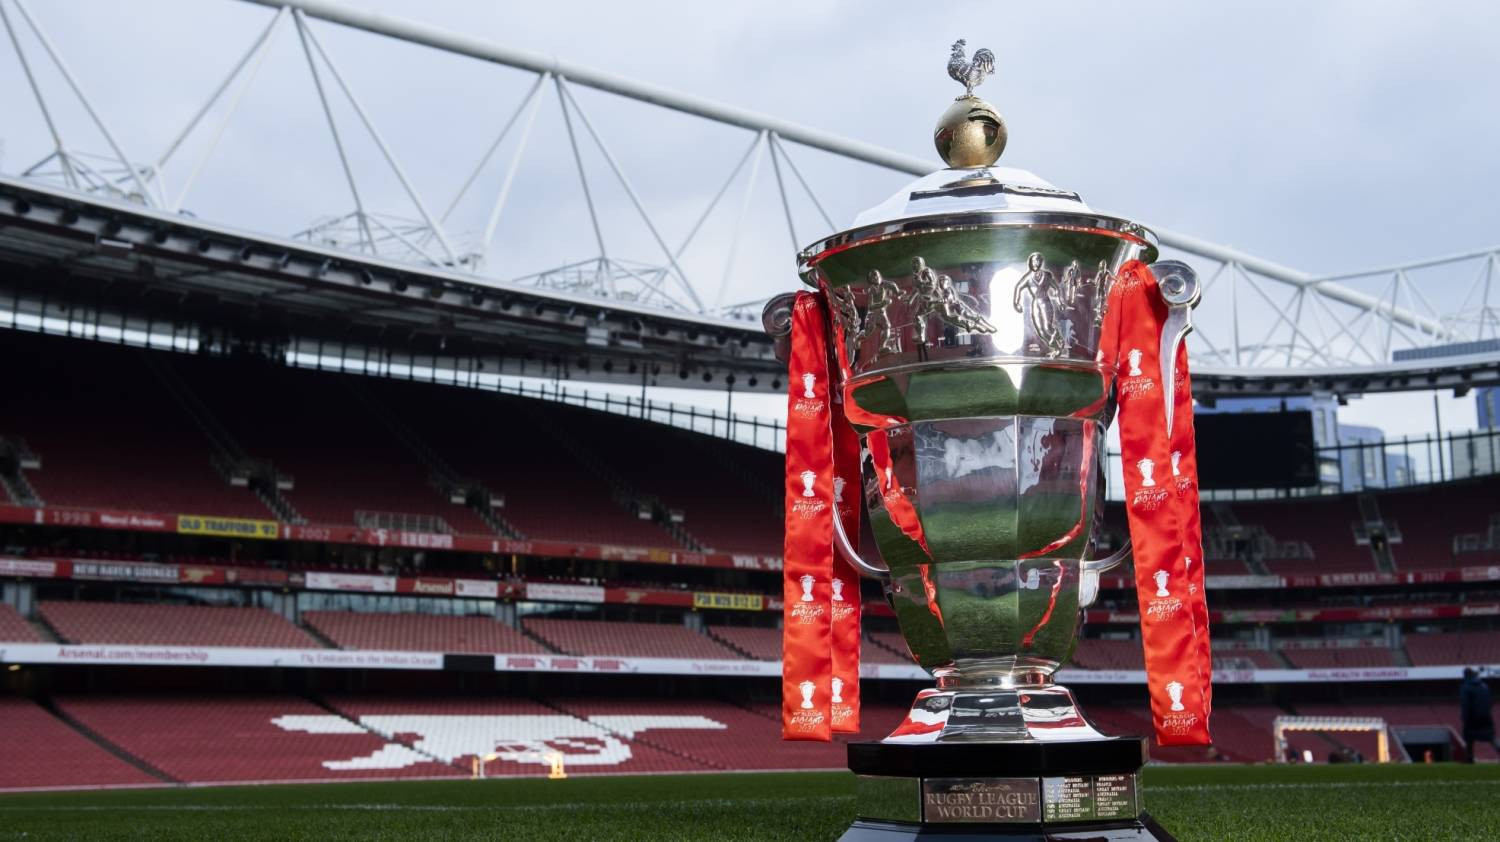 The Rugby League World Cup 2021 is set to take place in England next October and November ©RLWC2021